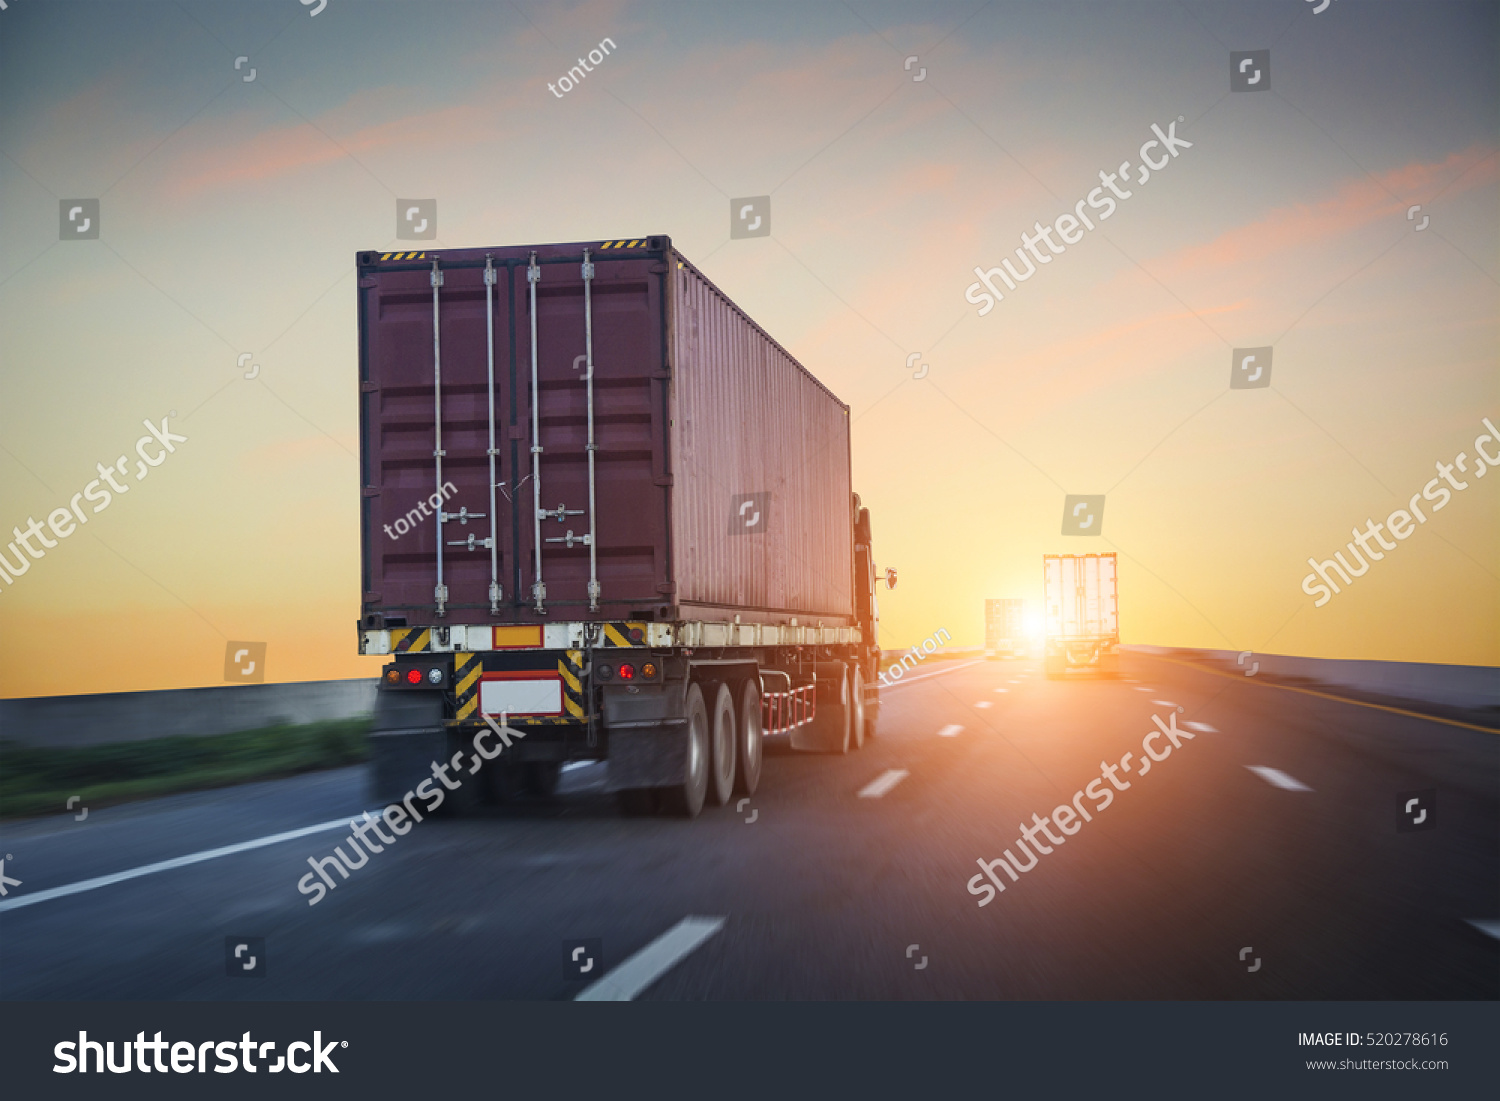 stock-photo-logistic-by-container-truck-520278616.jpg